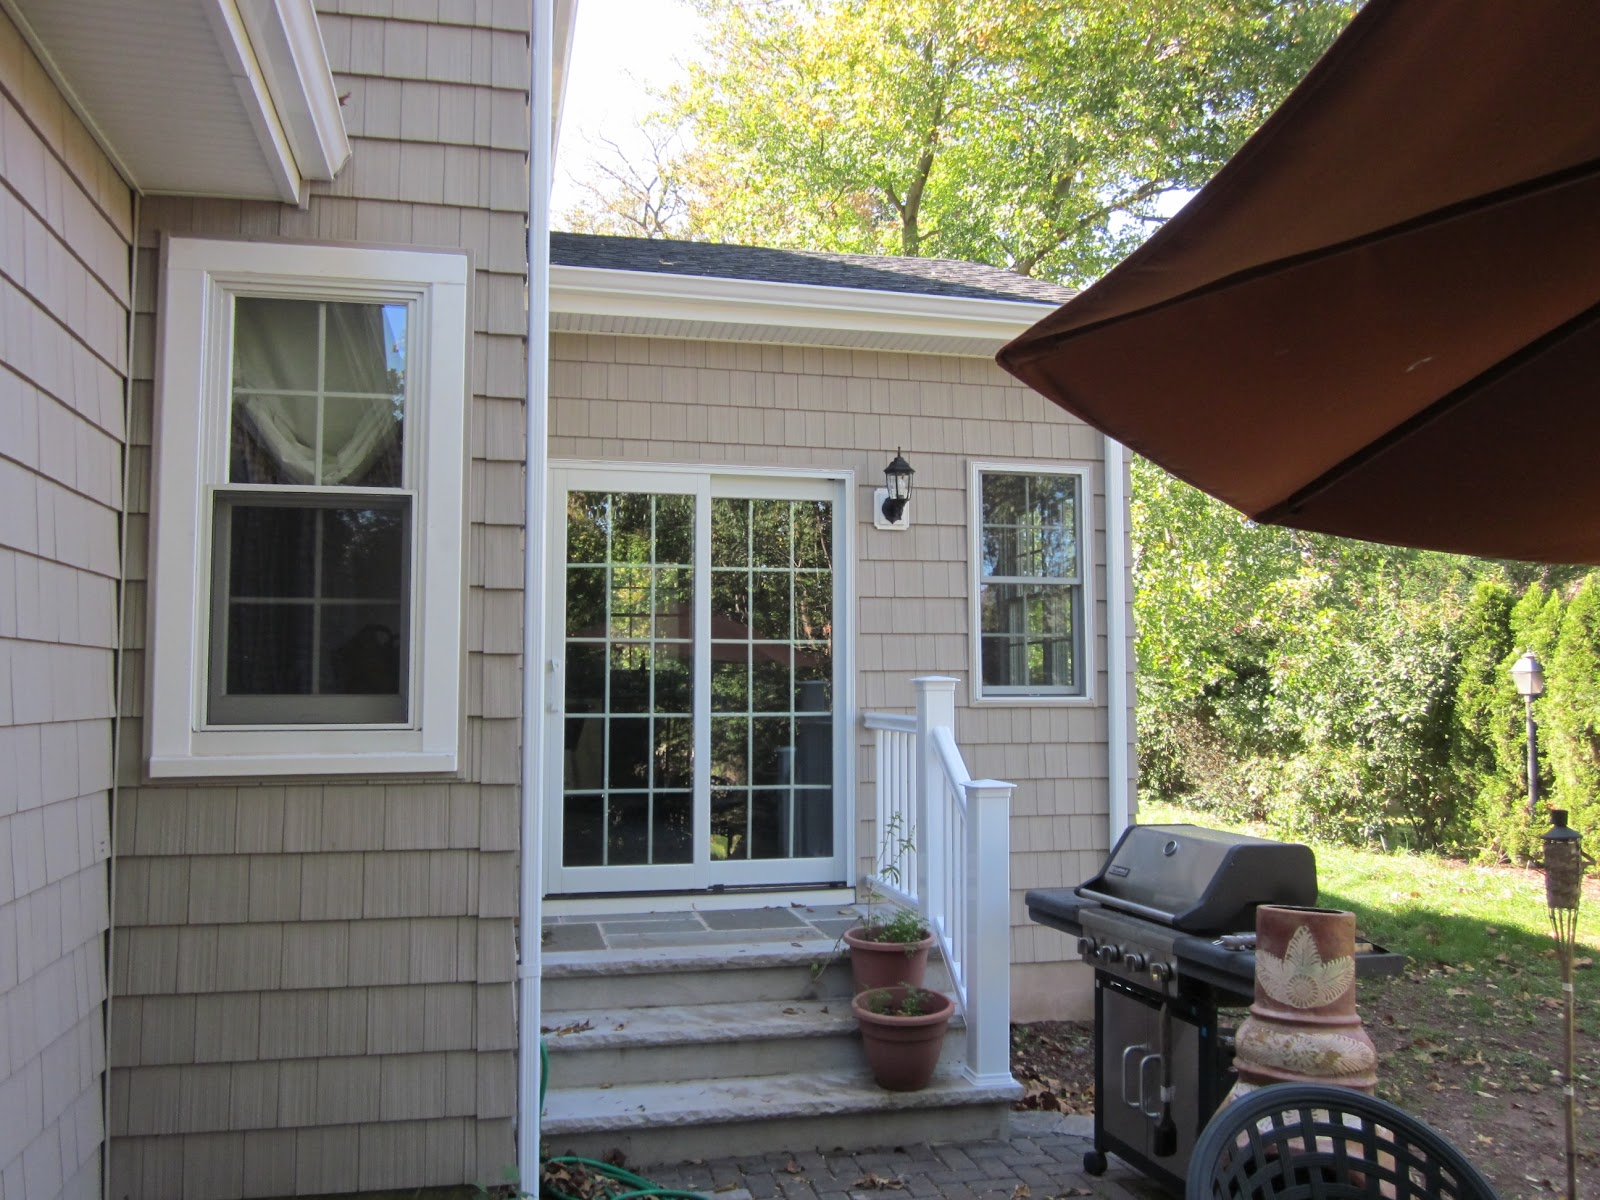 Robie j wood architect cape cod transformation in for Cape cod second floor addition